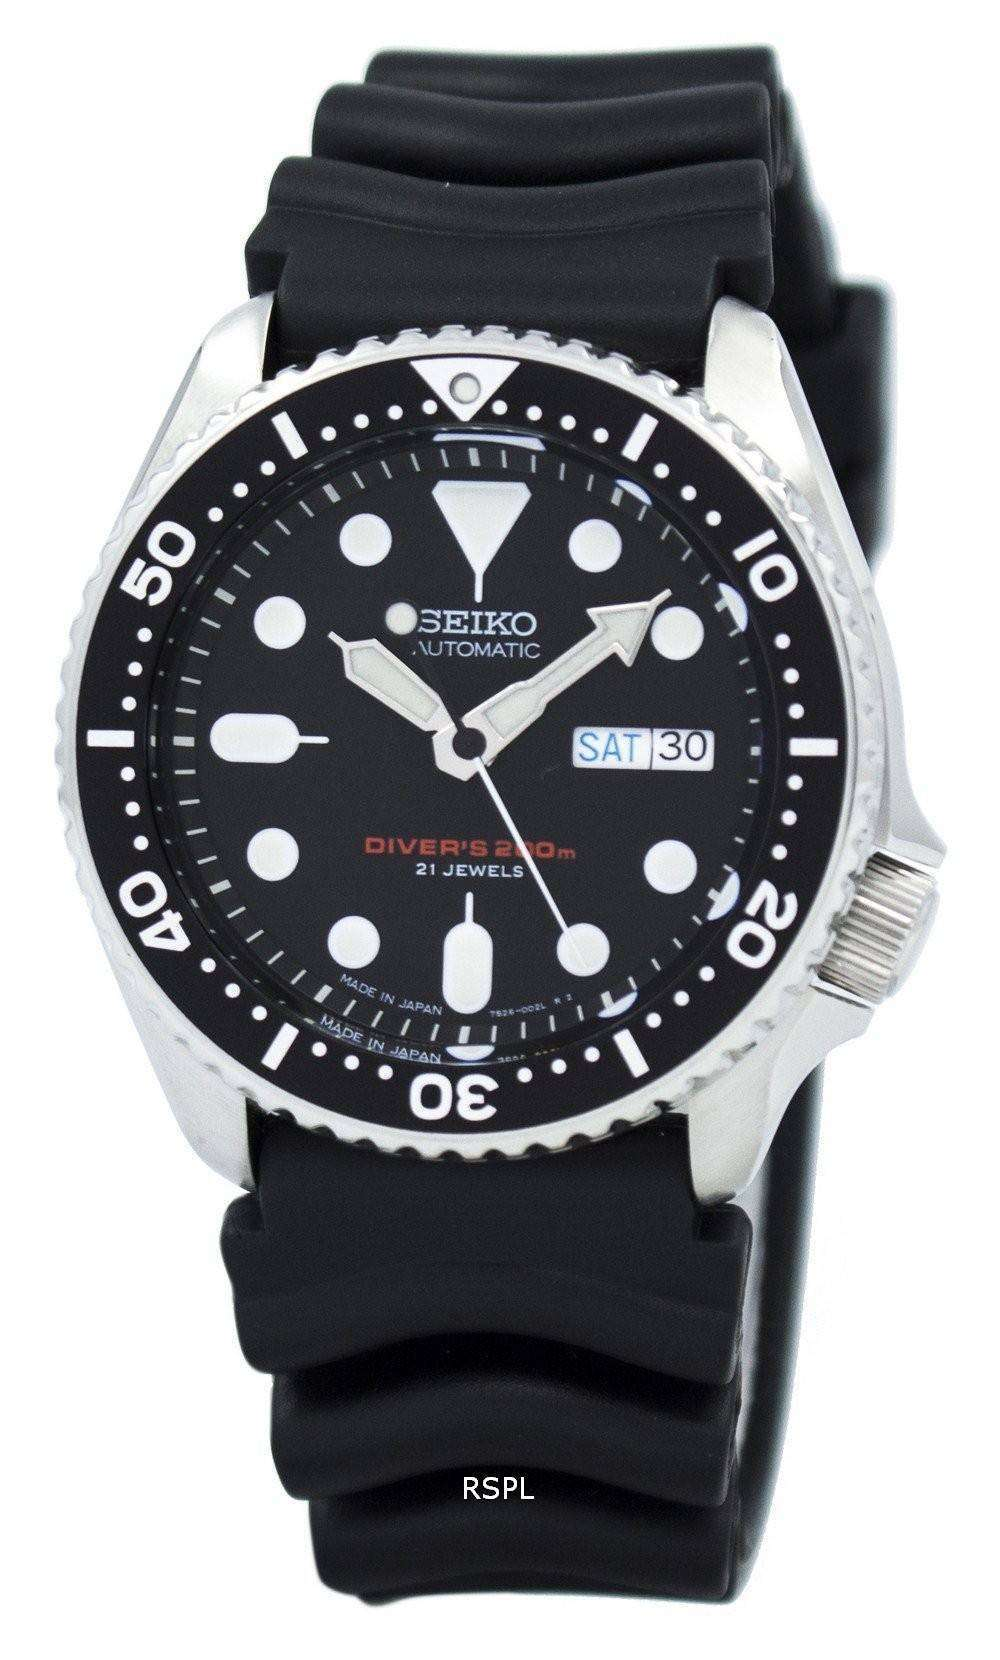 Seiko Automatic Divers 200m Skx007j1 Watch Citywatches Co Uk